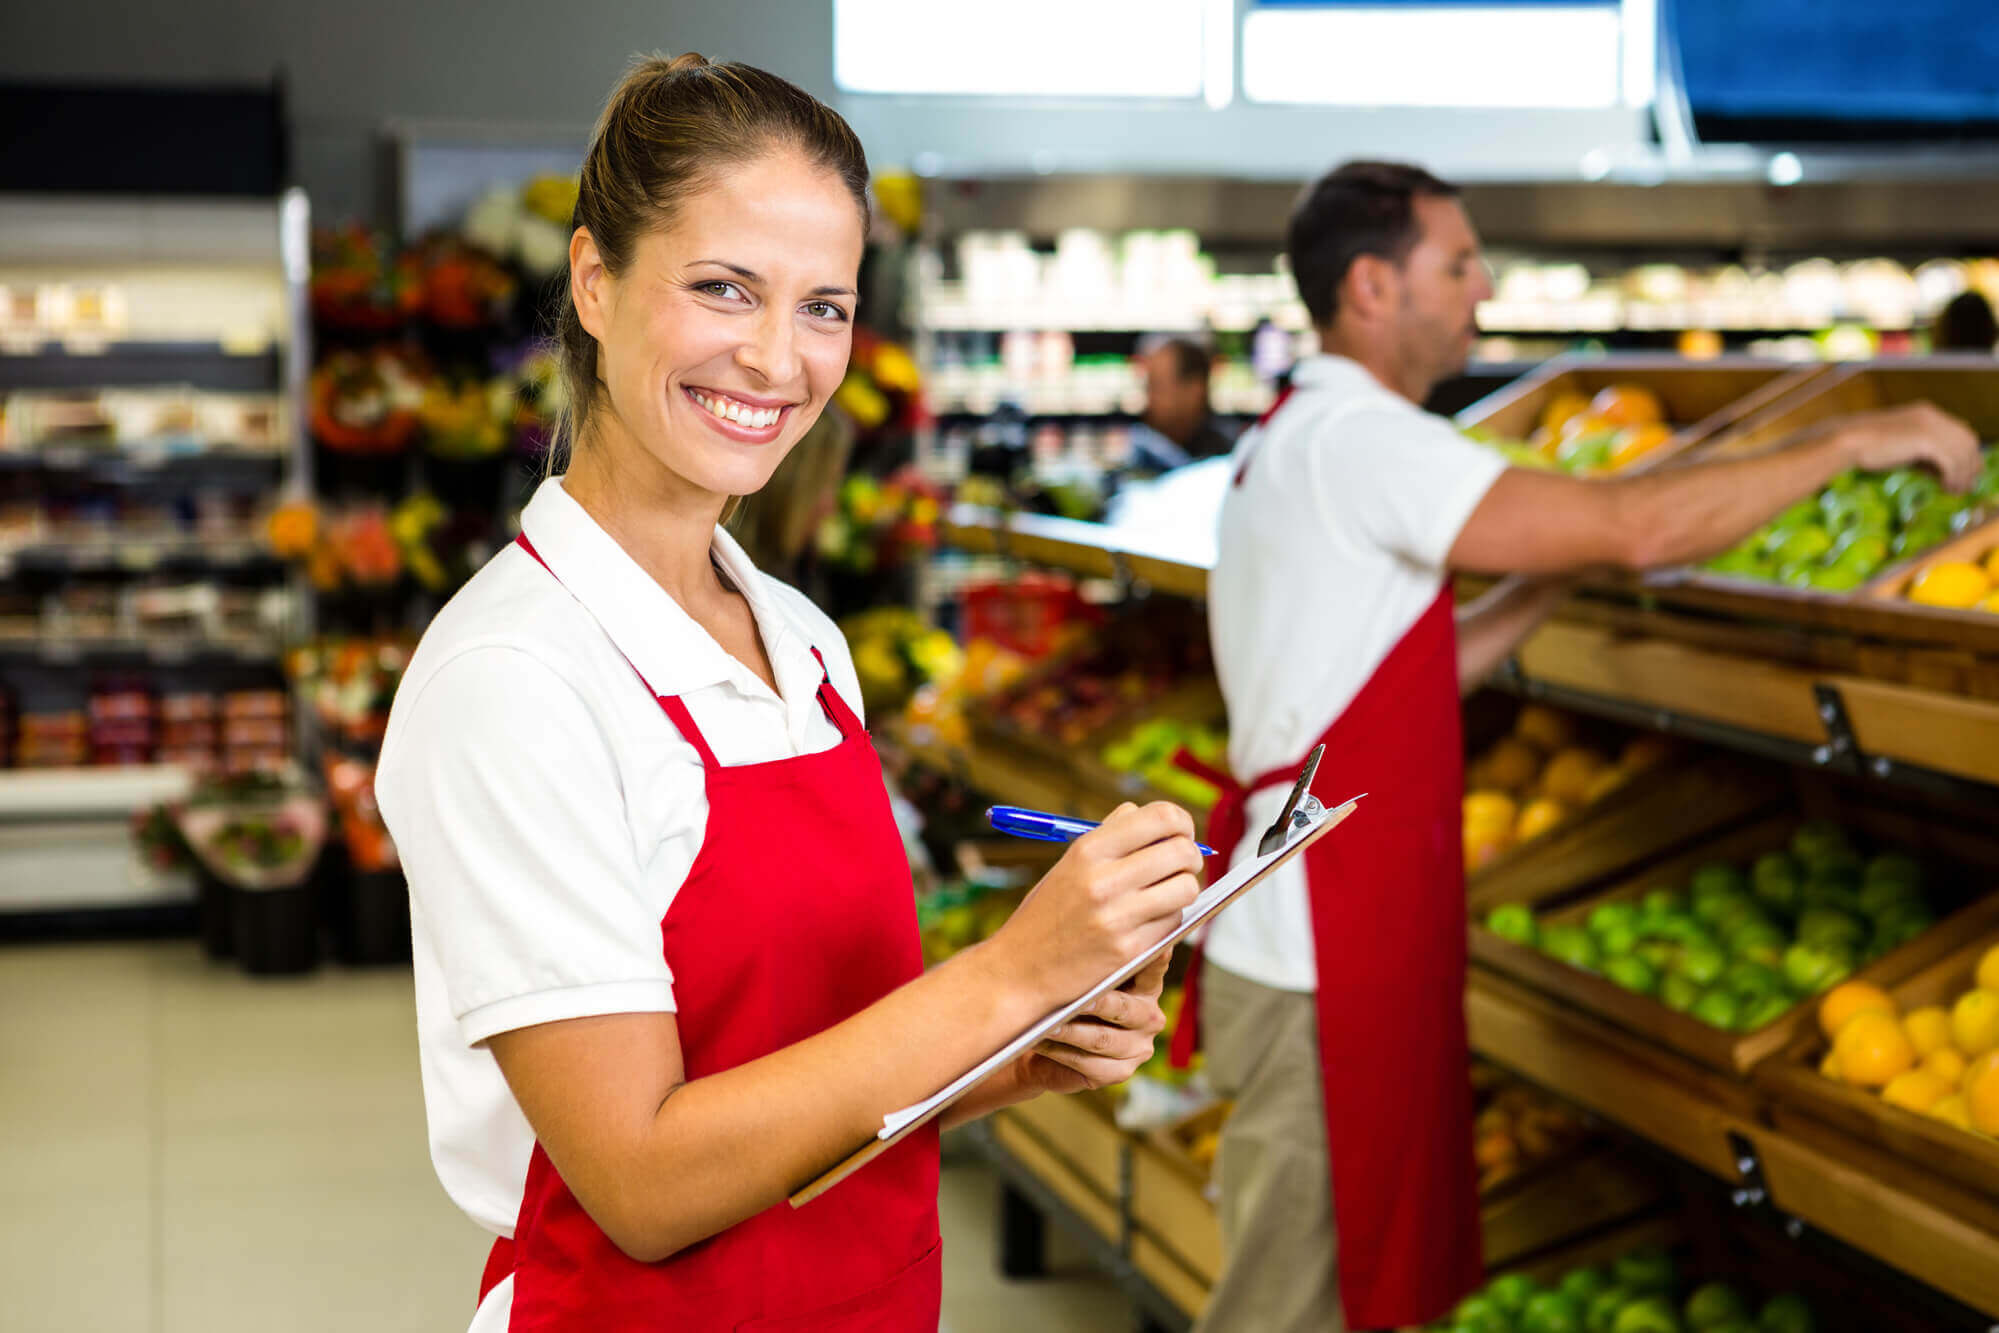 How To Request Products At Grocery Stores